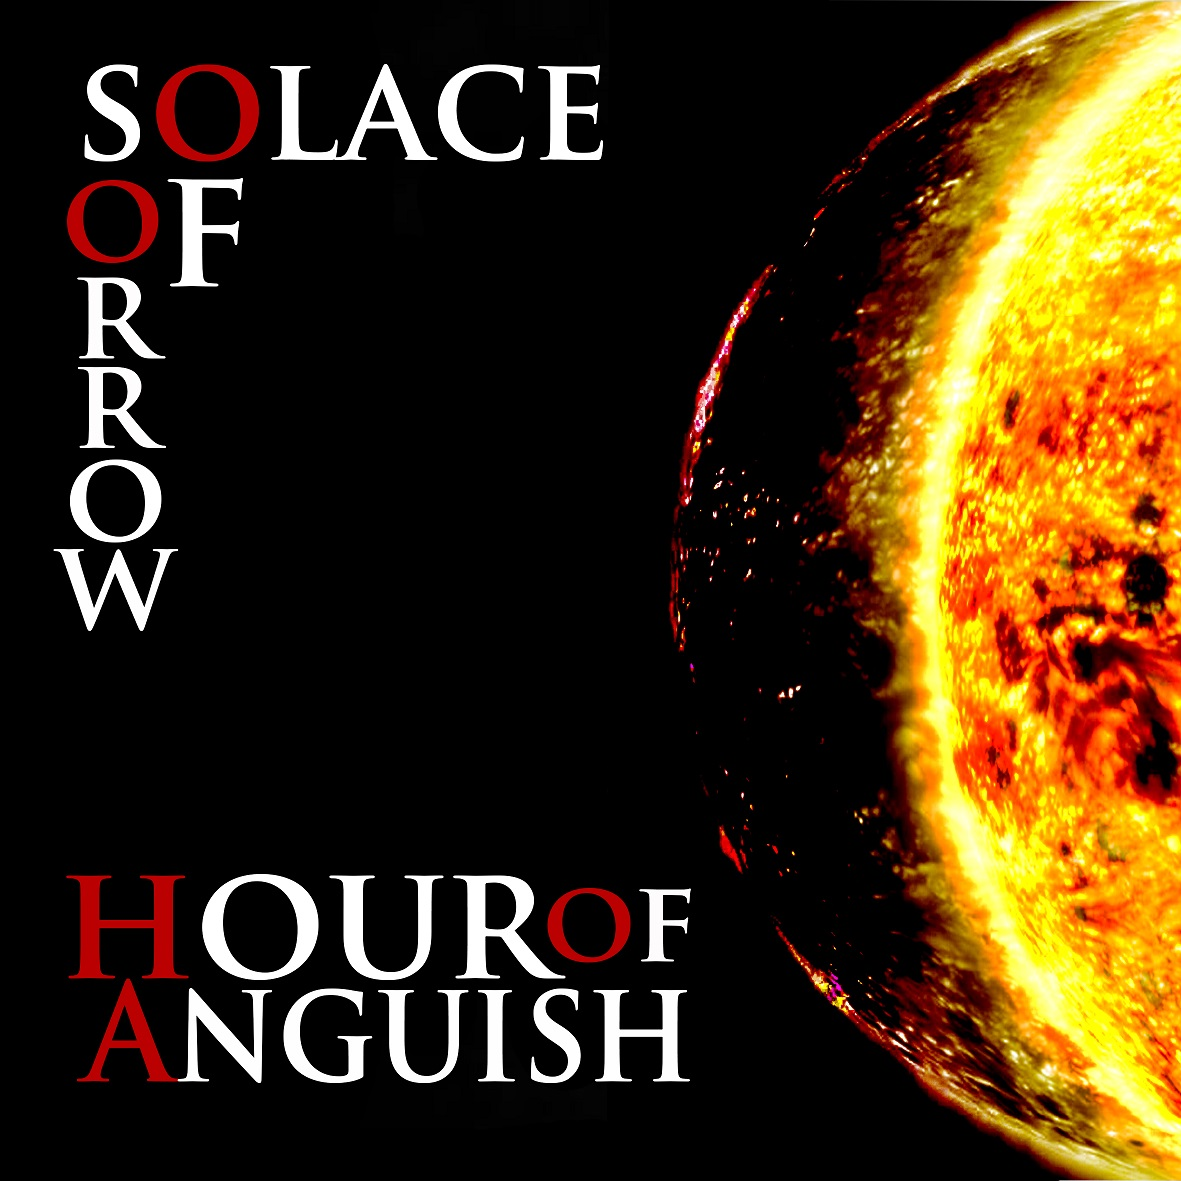 Hour of Anguish – Solace of Sorrow